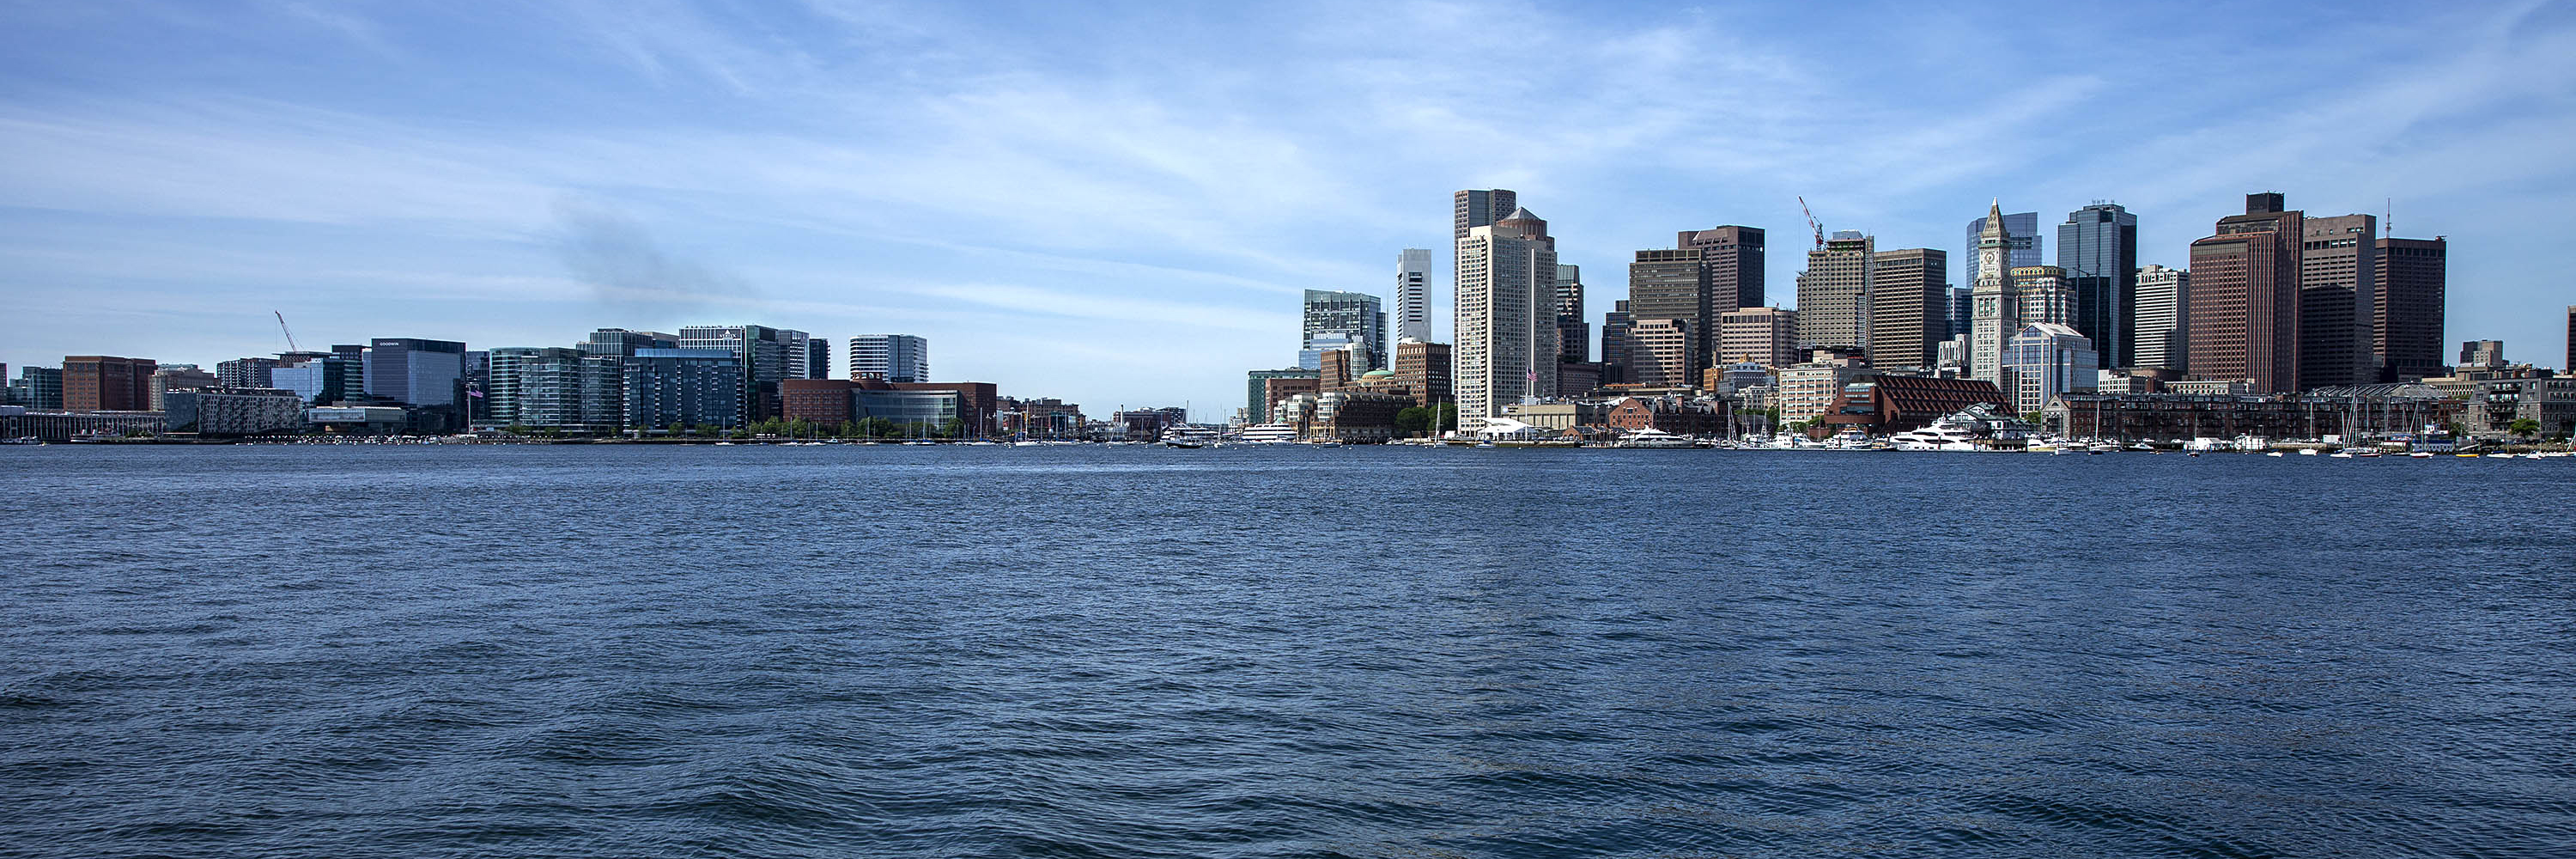 The Boston skyline seen from across the harbor with the Seaport on the left, central Boston on the right and Fort Point channel running between the two. (Robin Lubbock/WBUR)